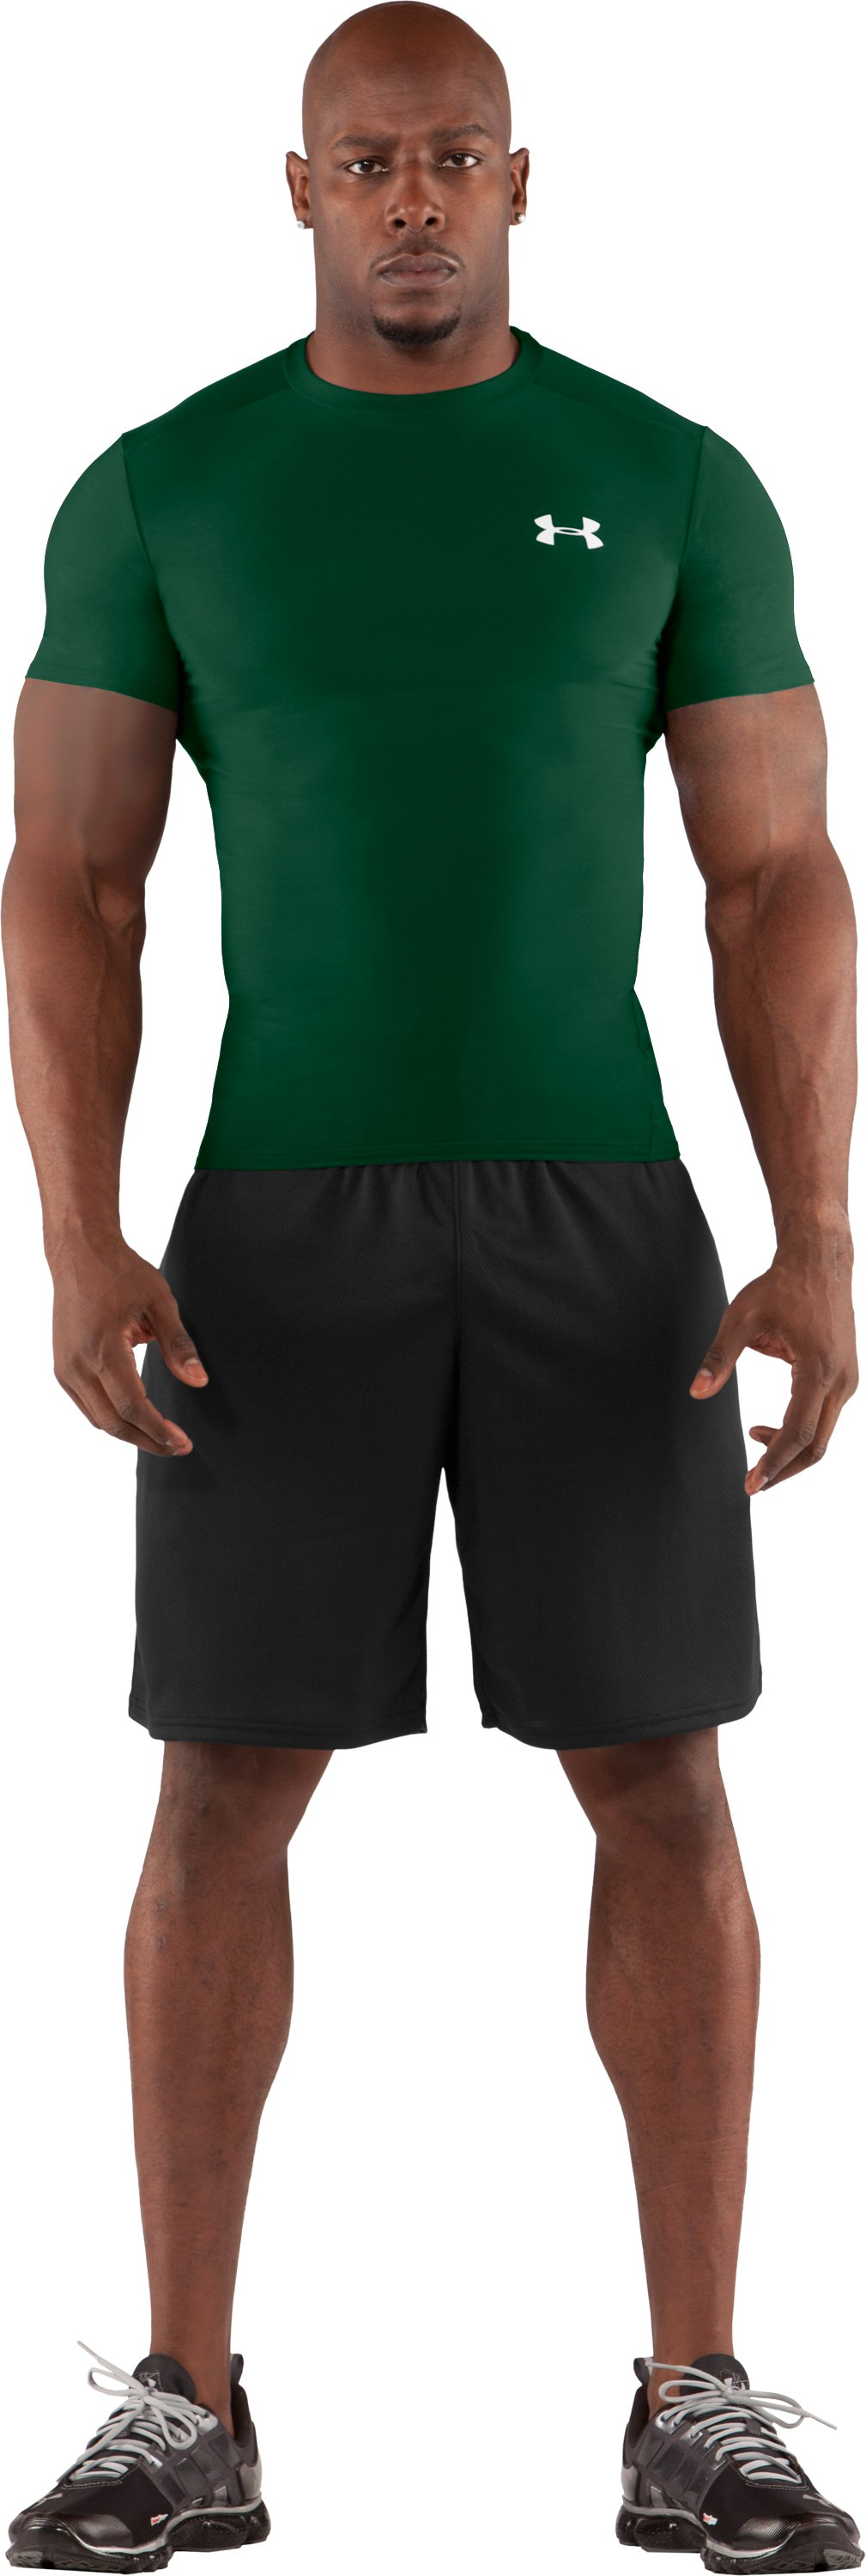 Men's HeatGear® Compression Short Sleeve T-Shirt, Forest Green, zoomed image